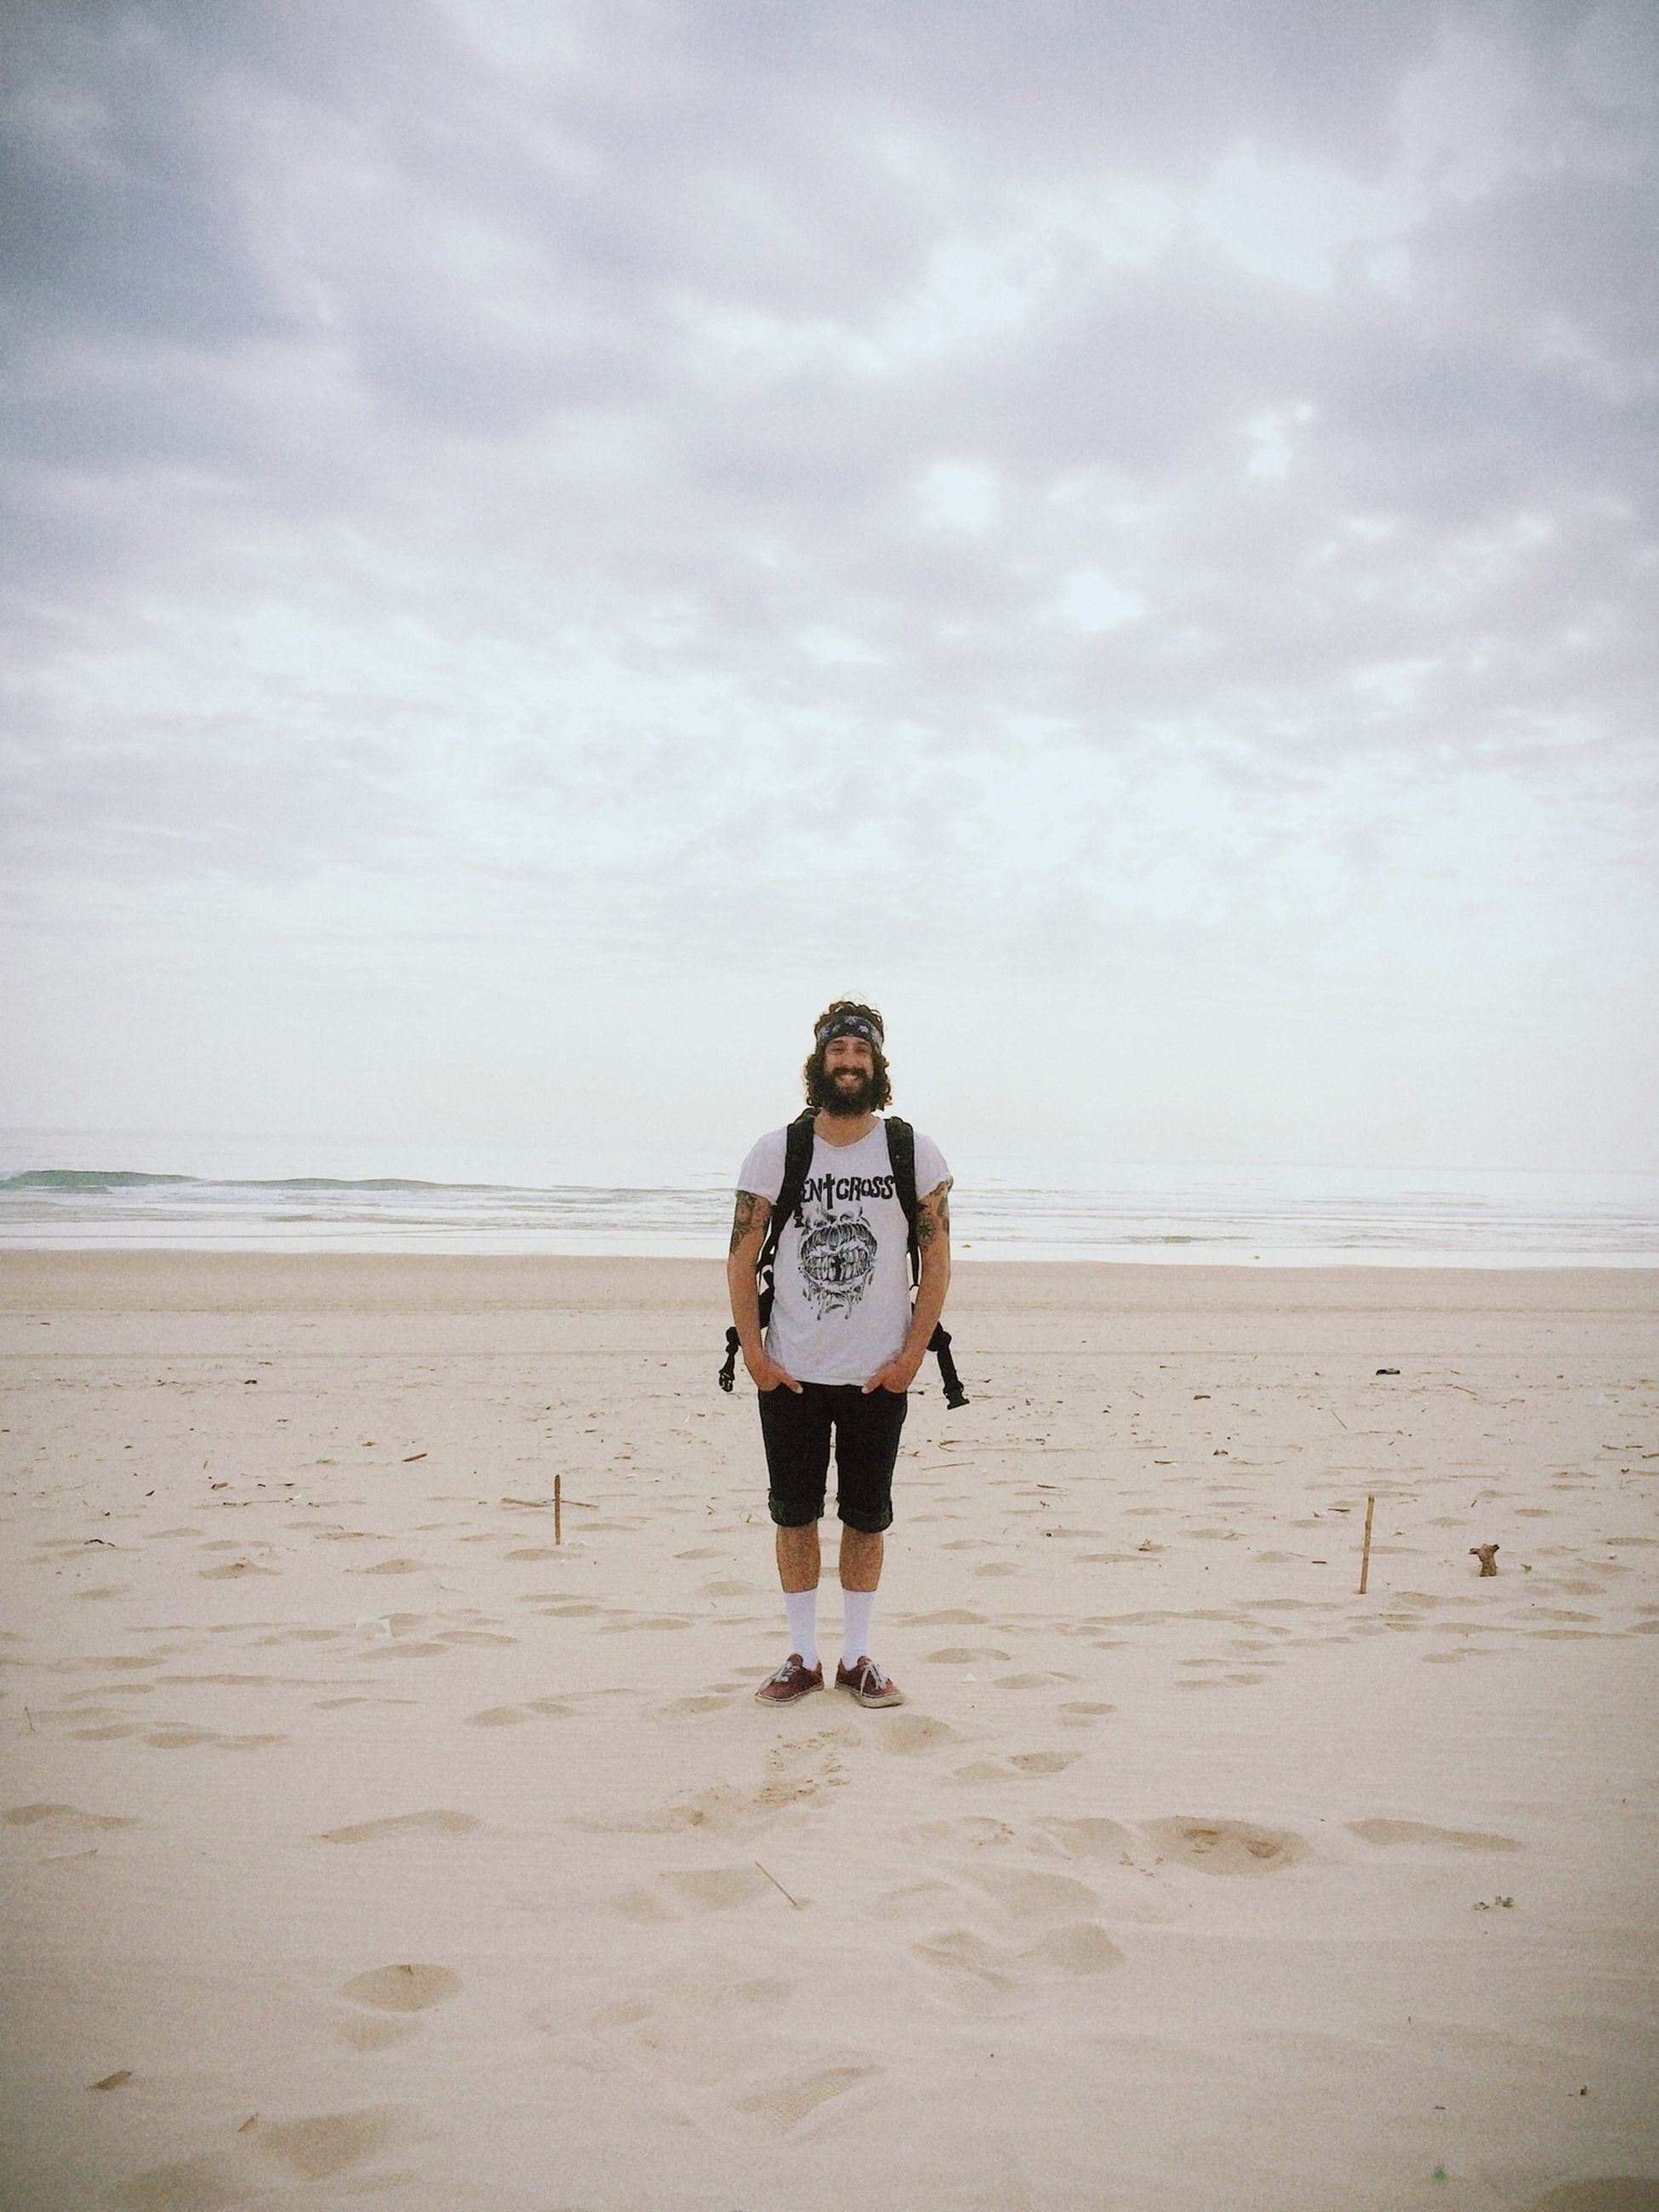 beach, sand, sea, sky, shore, horizon over water, rear view, full length, lifestyles, leisure activity, tranquility, walking, tranquil scene, person, cloud - sky, casual clothing, vacations, scenics